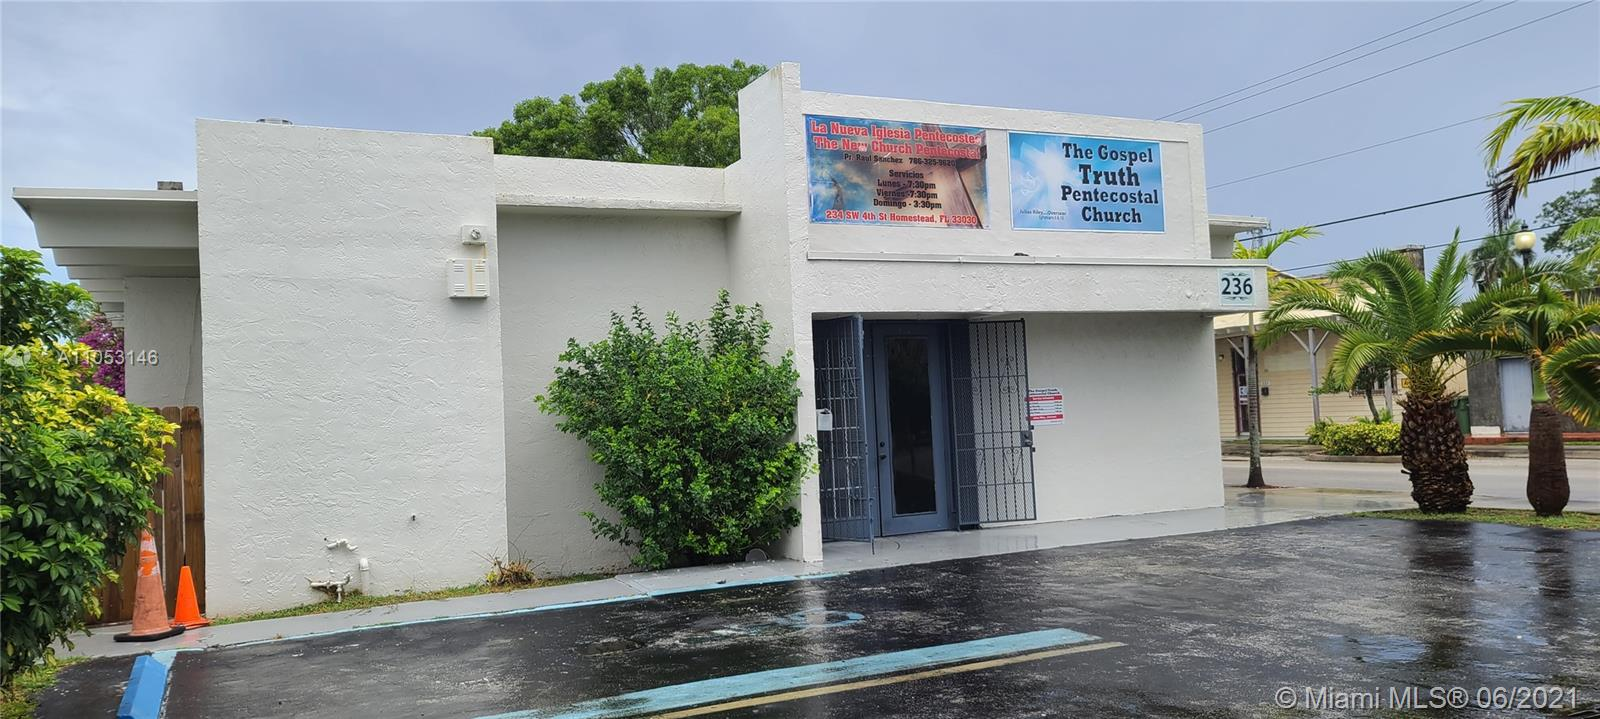 236 SW 4th St  For Sale A11053146, FL